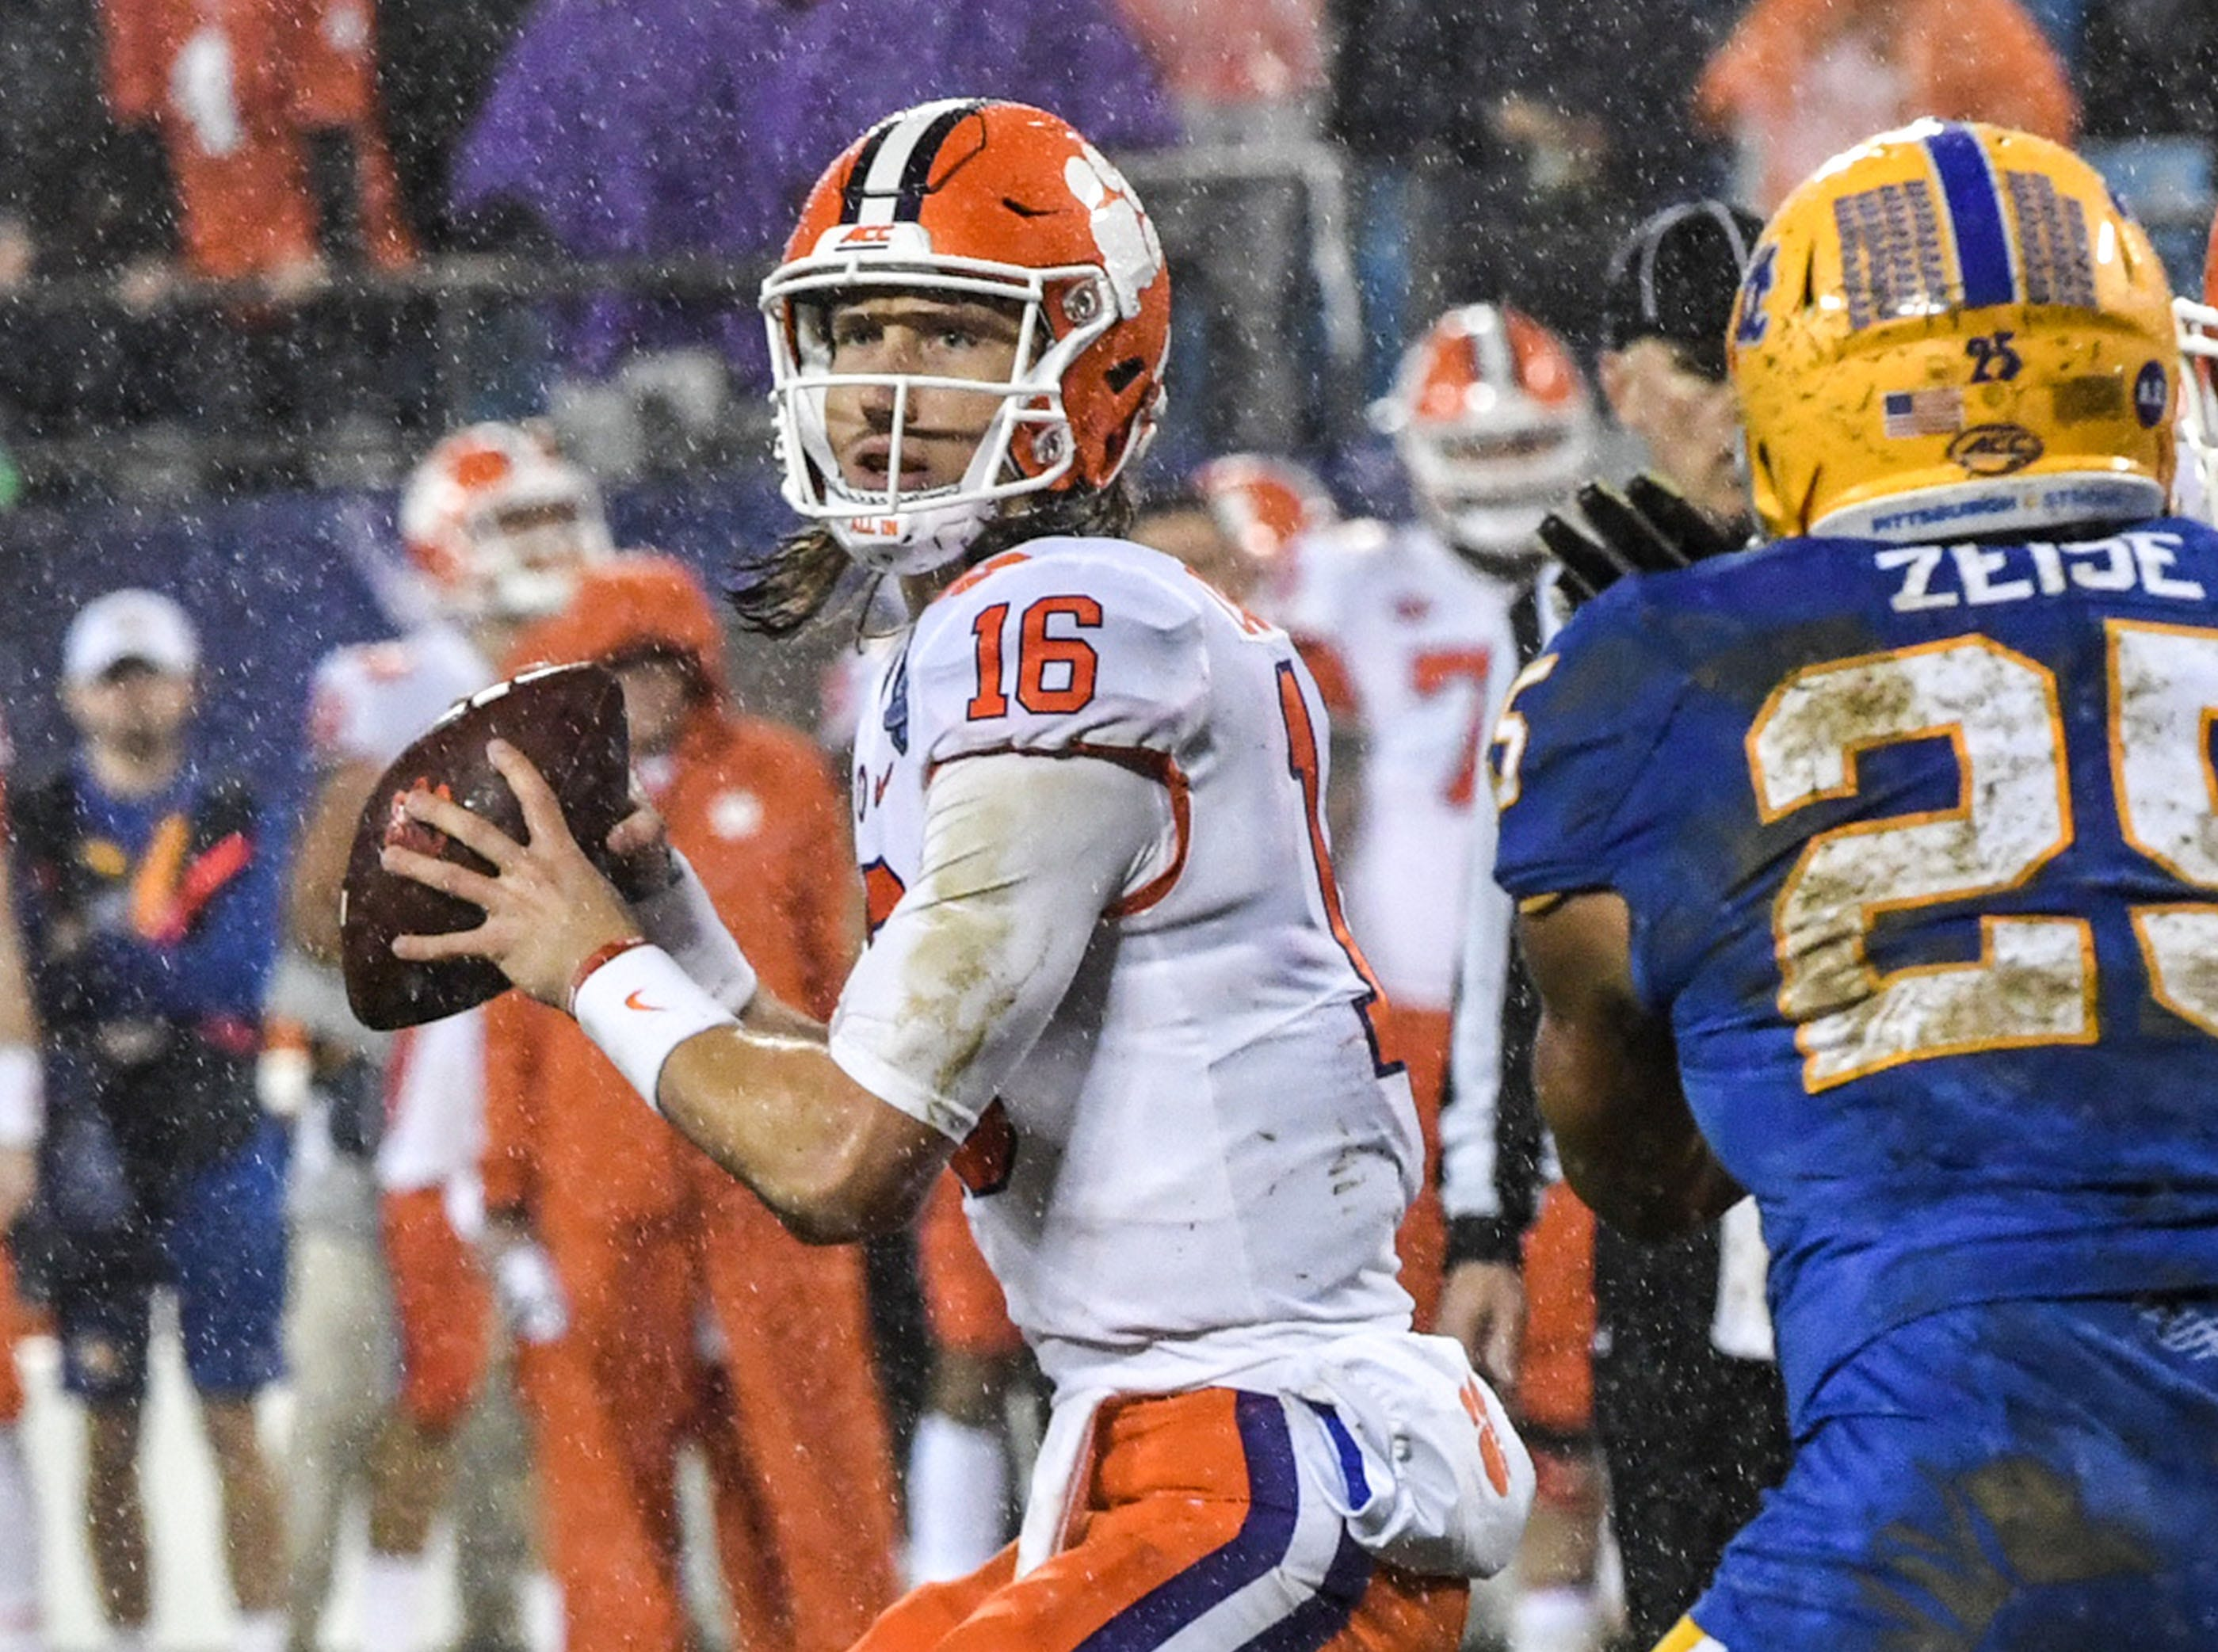 Clemson quarterback Trevor Lawrence (16) passes to wide receiver Tee Higgins (5) for a touchdown against Pittsburgh during the second quarter of the Dr. Pepper ACC football championship at Bank of America Stadium in Charlotte, N.C. on Saturday, December 1, 2018.